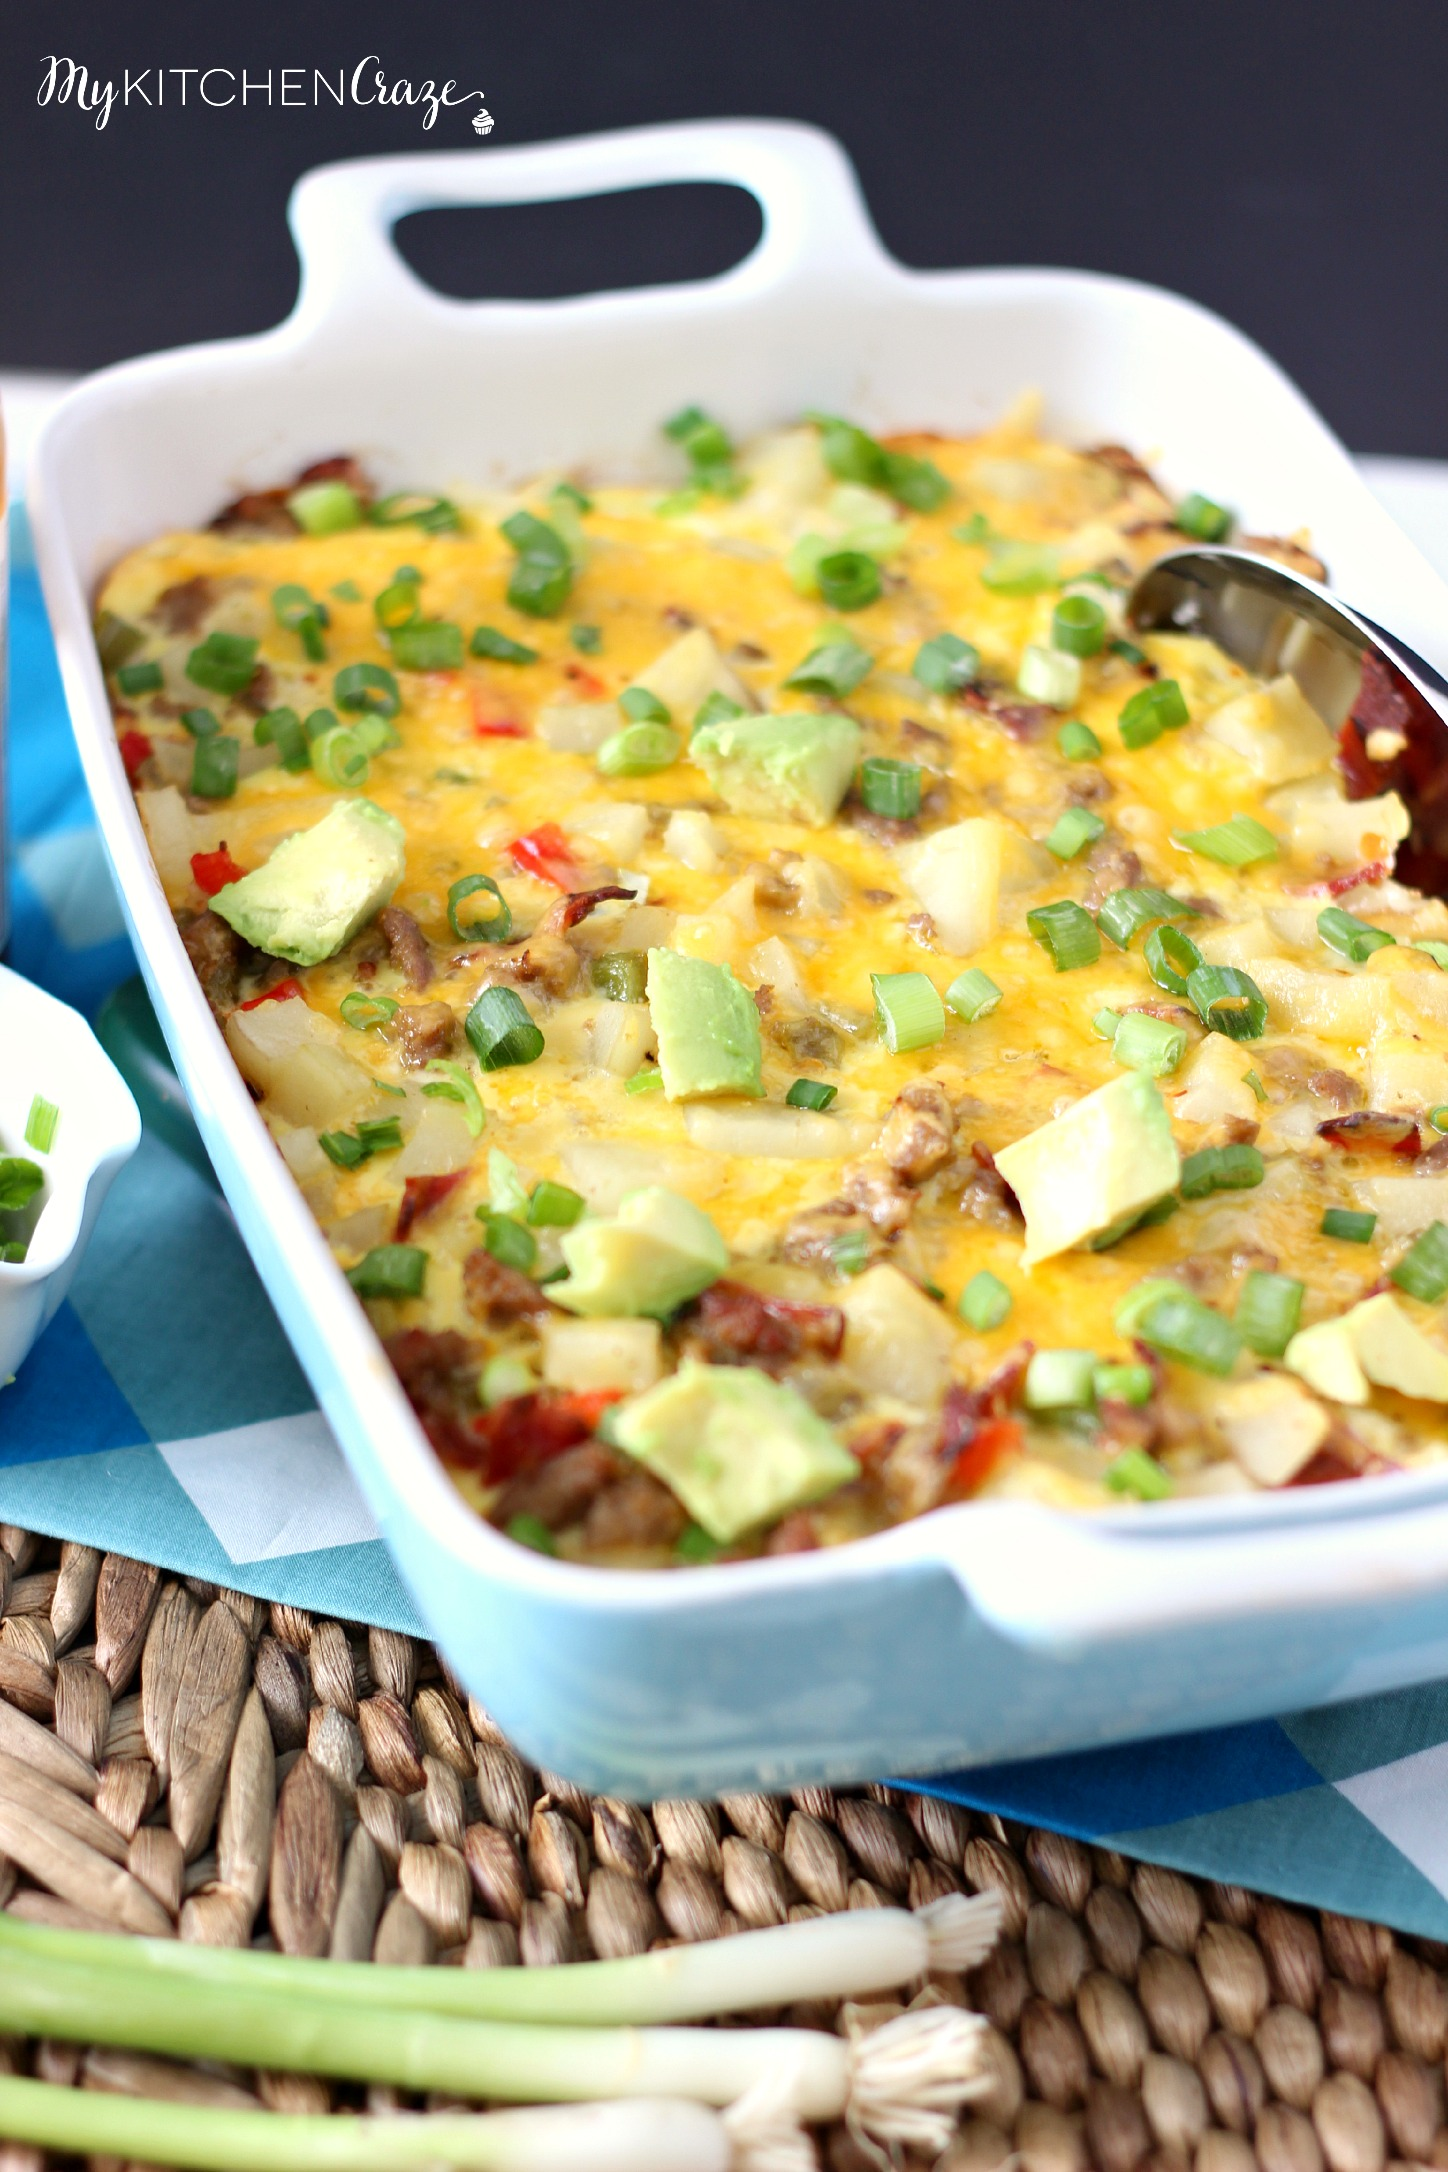 Breakfast Casserole ~ mykitchencraze.com ~ A quick, easy and delicious casserole for those family days!